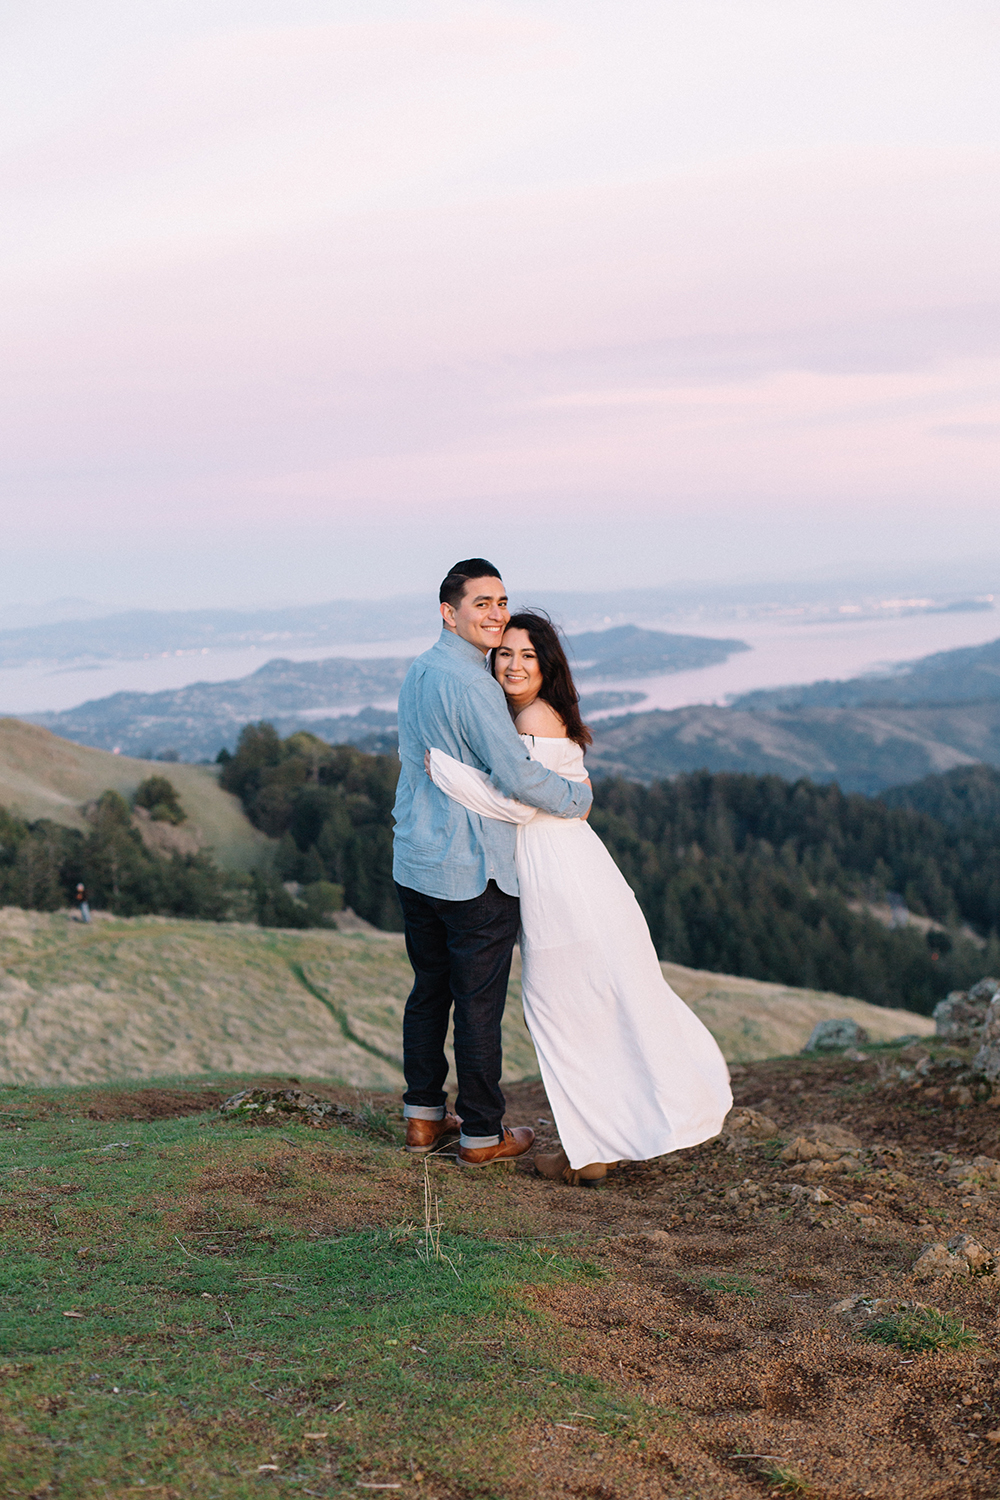 Portrait of a couple with a view of the San Francisco Bay Area in the background during their engagement session in Mount Tamalpais in Marin, California.